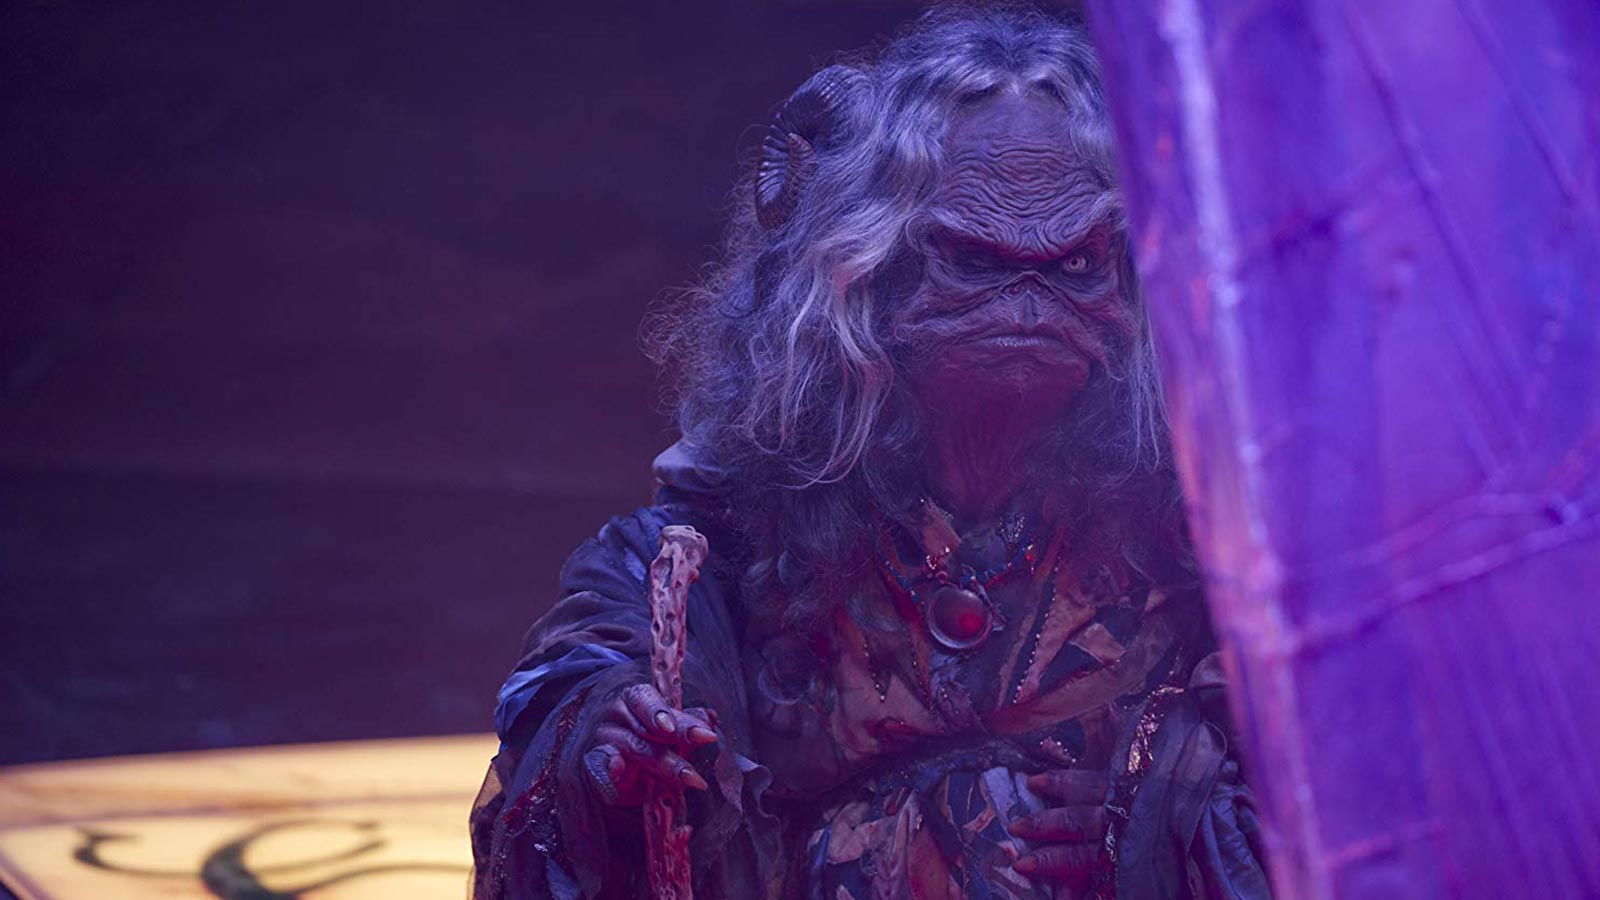 The Dark Crystal: Age Of Resistance Review - OC Movie Reviews - Movie Reviews, Movie News, Documentary Reviews, Short Films, Short Film Reviews, Trailers, Movie Trailers, Interviews, film reviews, film news, hollywood, indie films, documentaries, TV shows